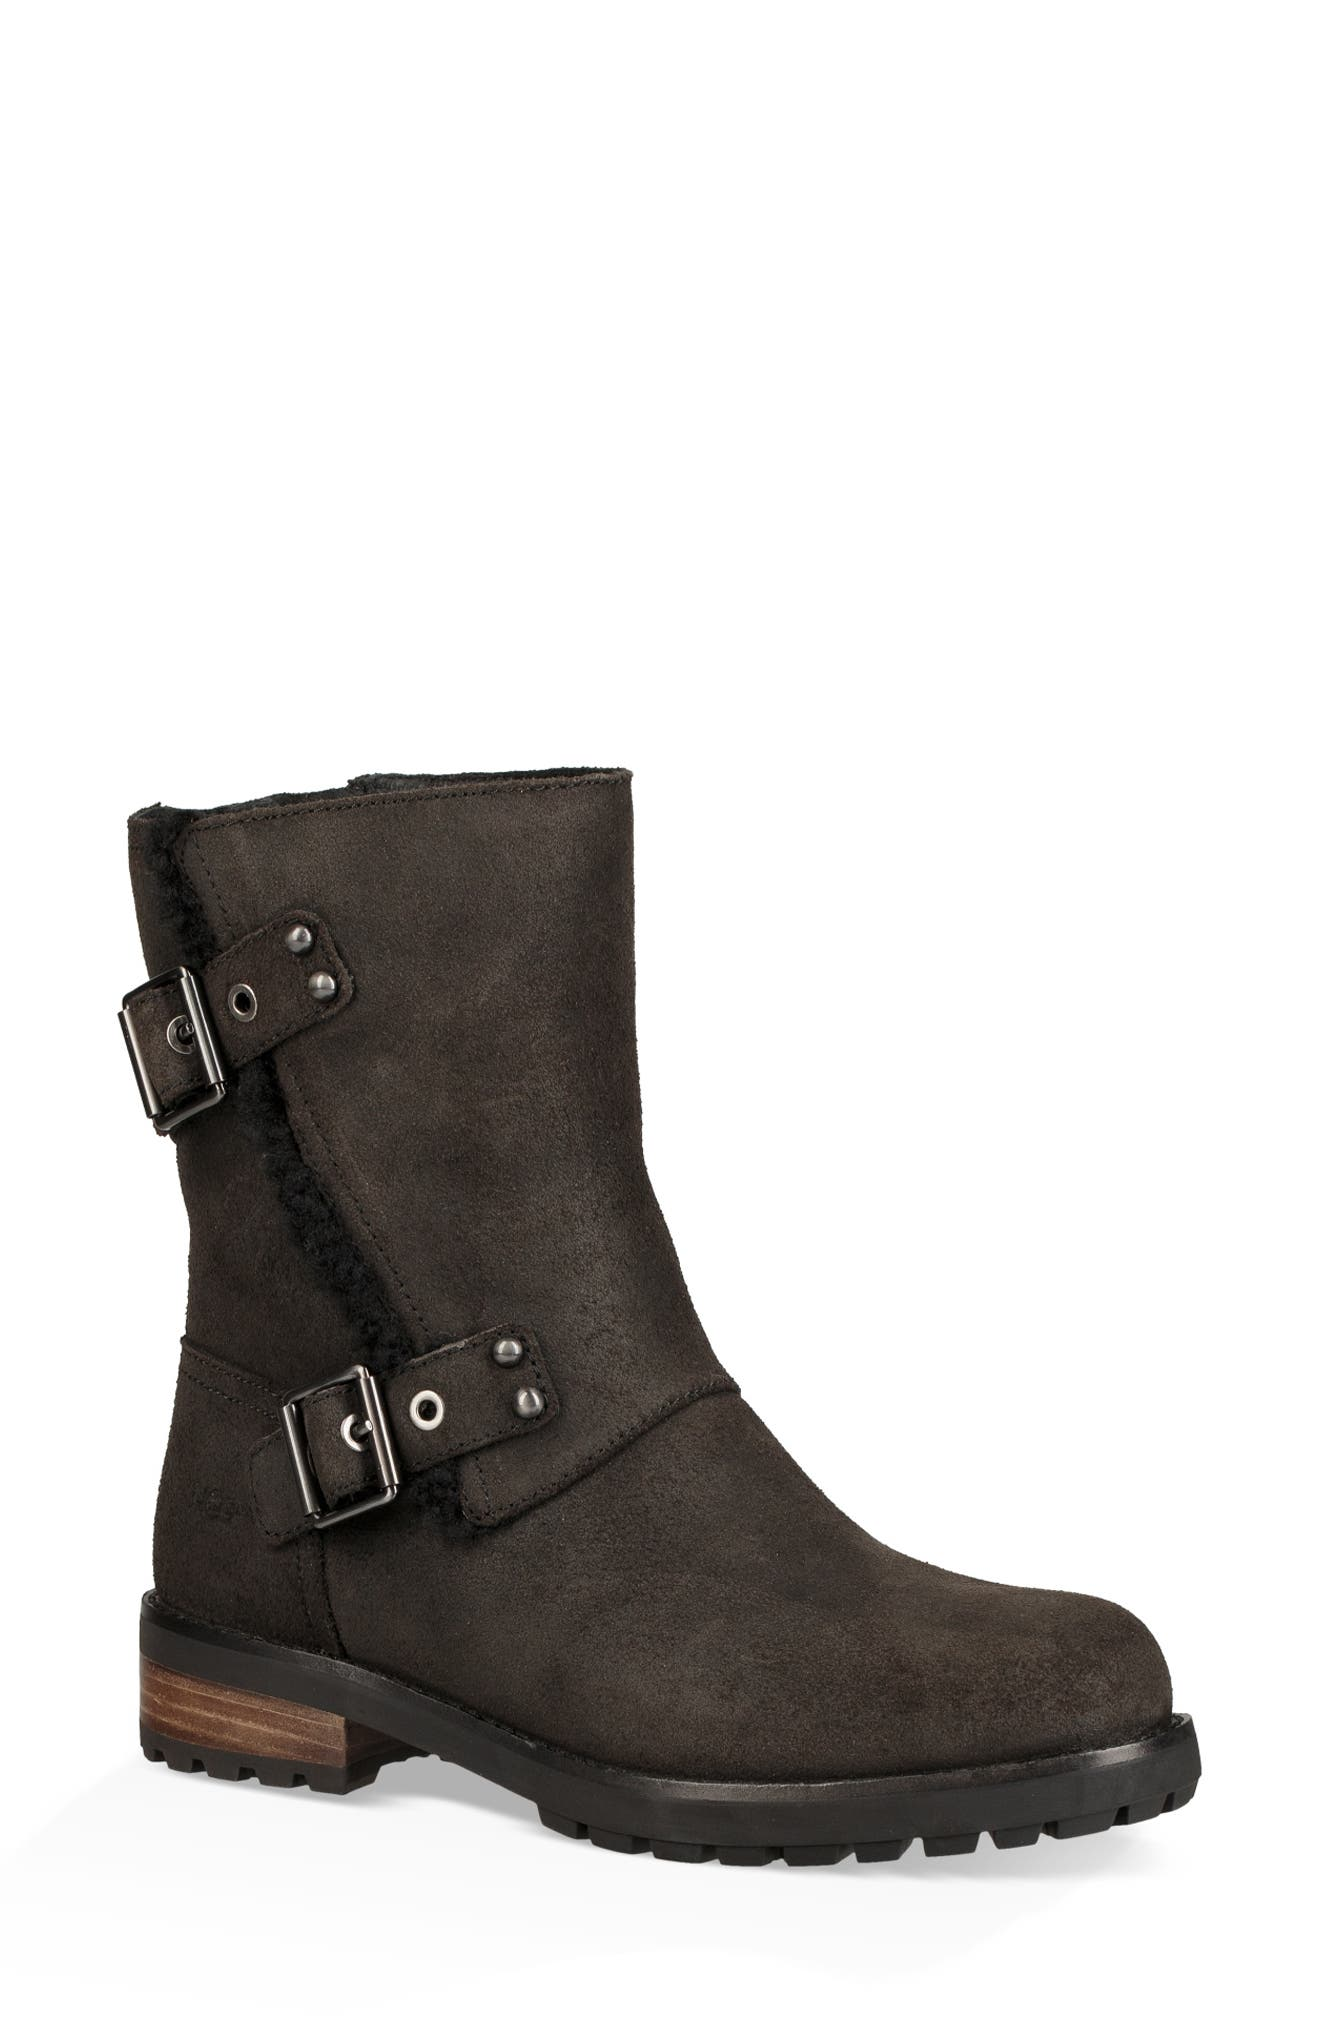 Niels II Water Resistant Bootie,                         Main,                         color, BLACK